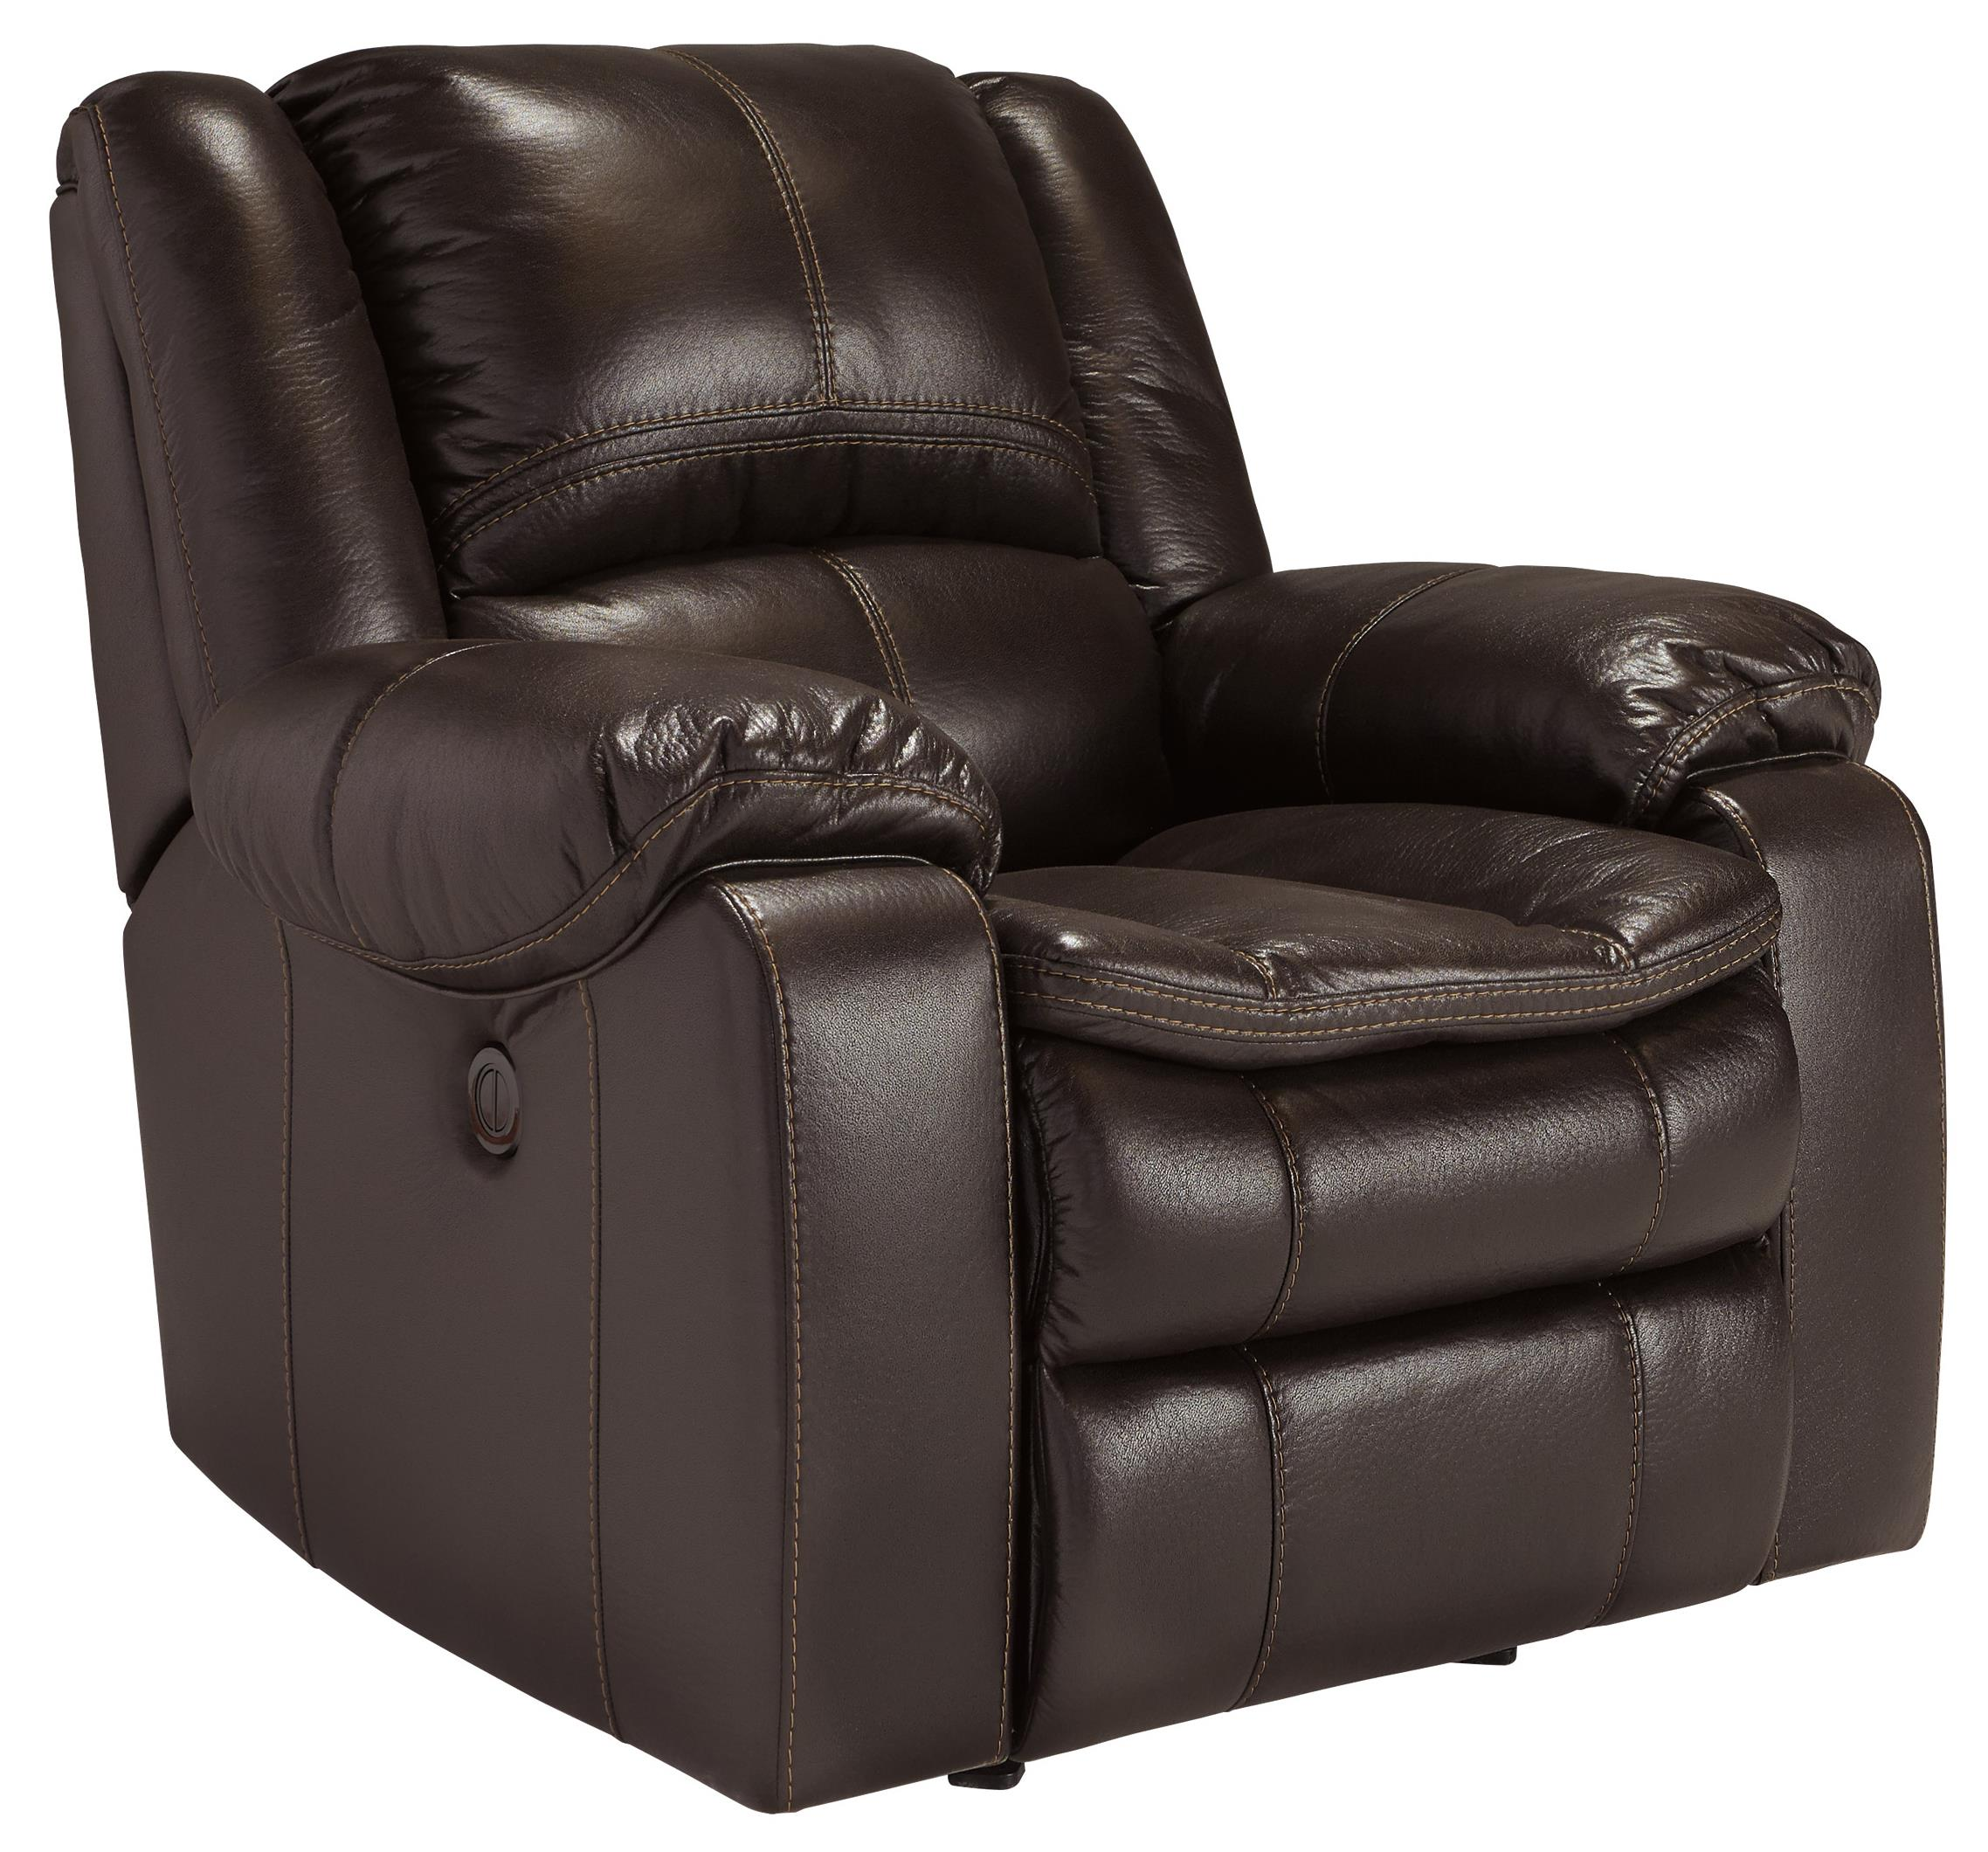 Signature Design by Ashley Long Knight Power Rocker Recliner - Item Number: 8890598